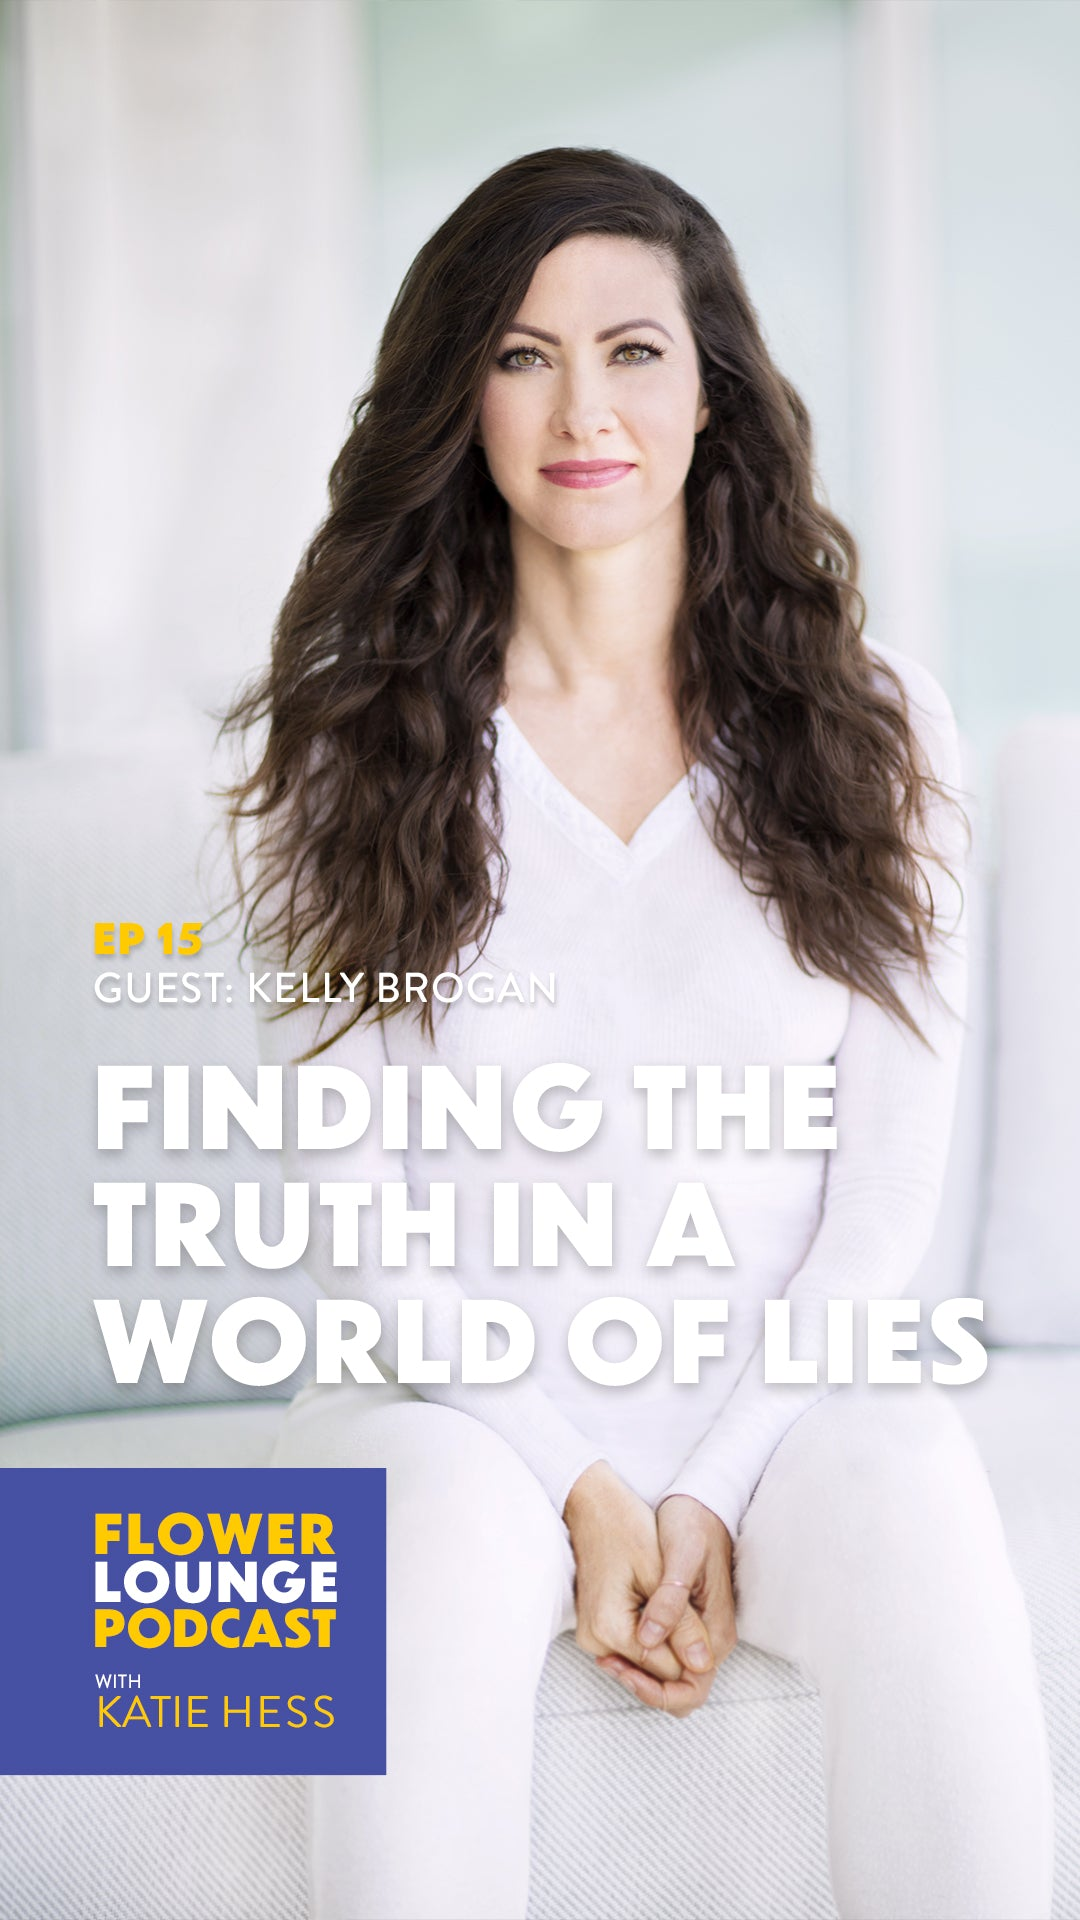 Finding the Truth in a World of Lies with Kelly Brogan on the Flowerlounge Podcast with Katie Hess